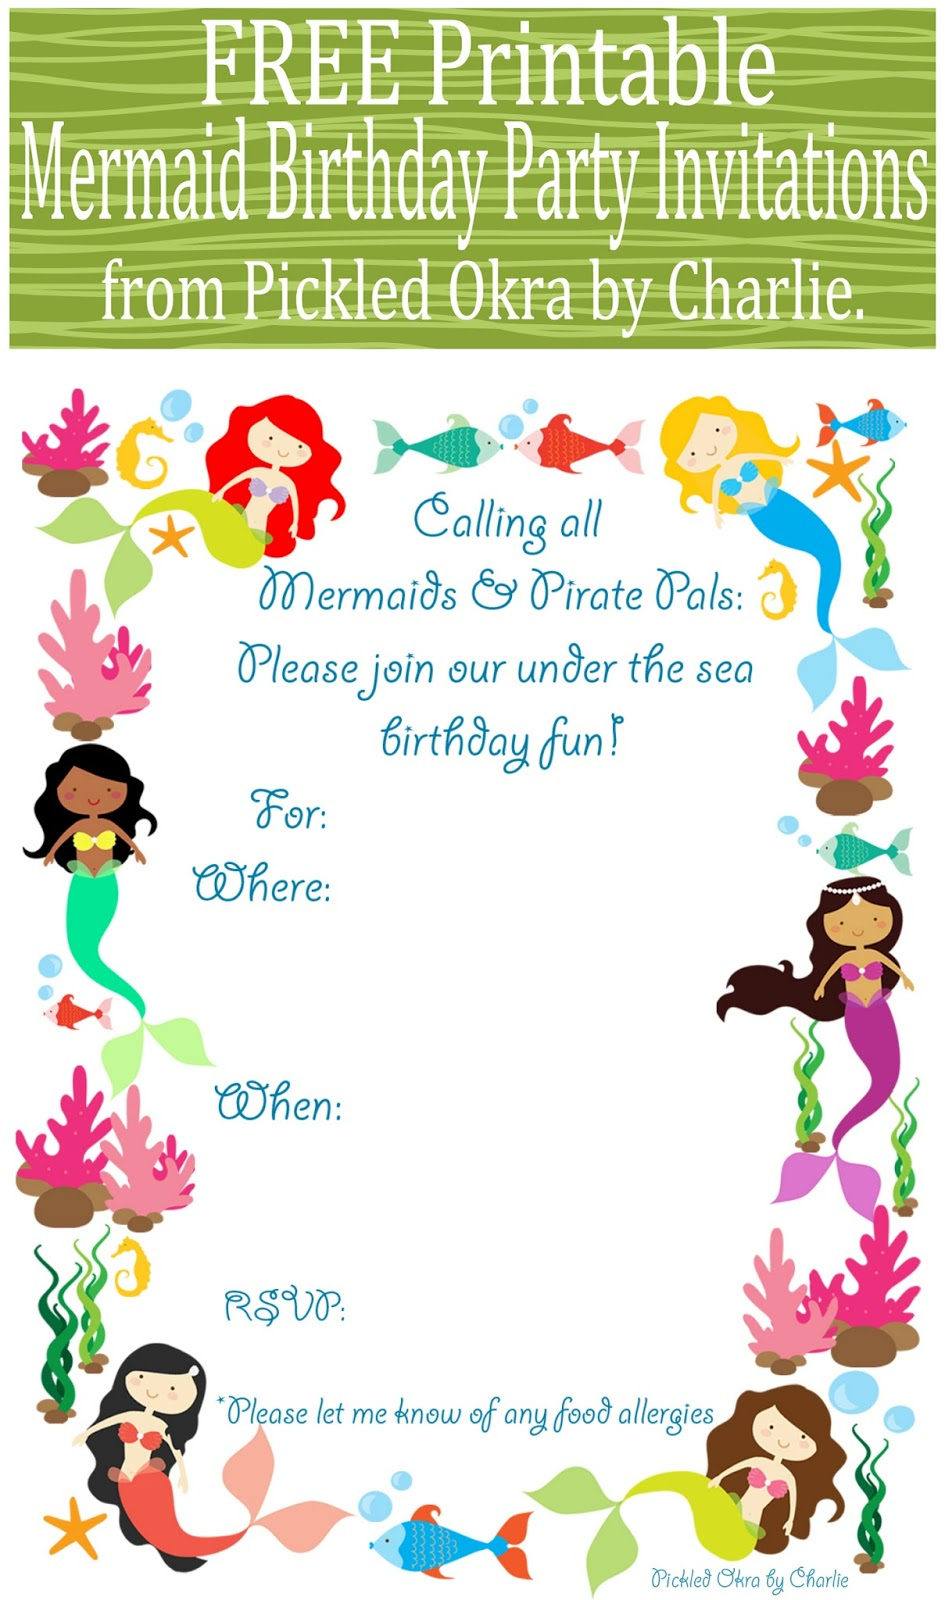 Mermaid Bithday Party Invitations, Free Printable - Free Printable Water Park Birthday Invitations